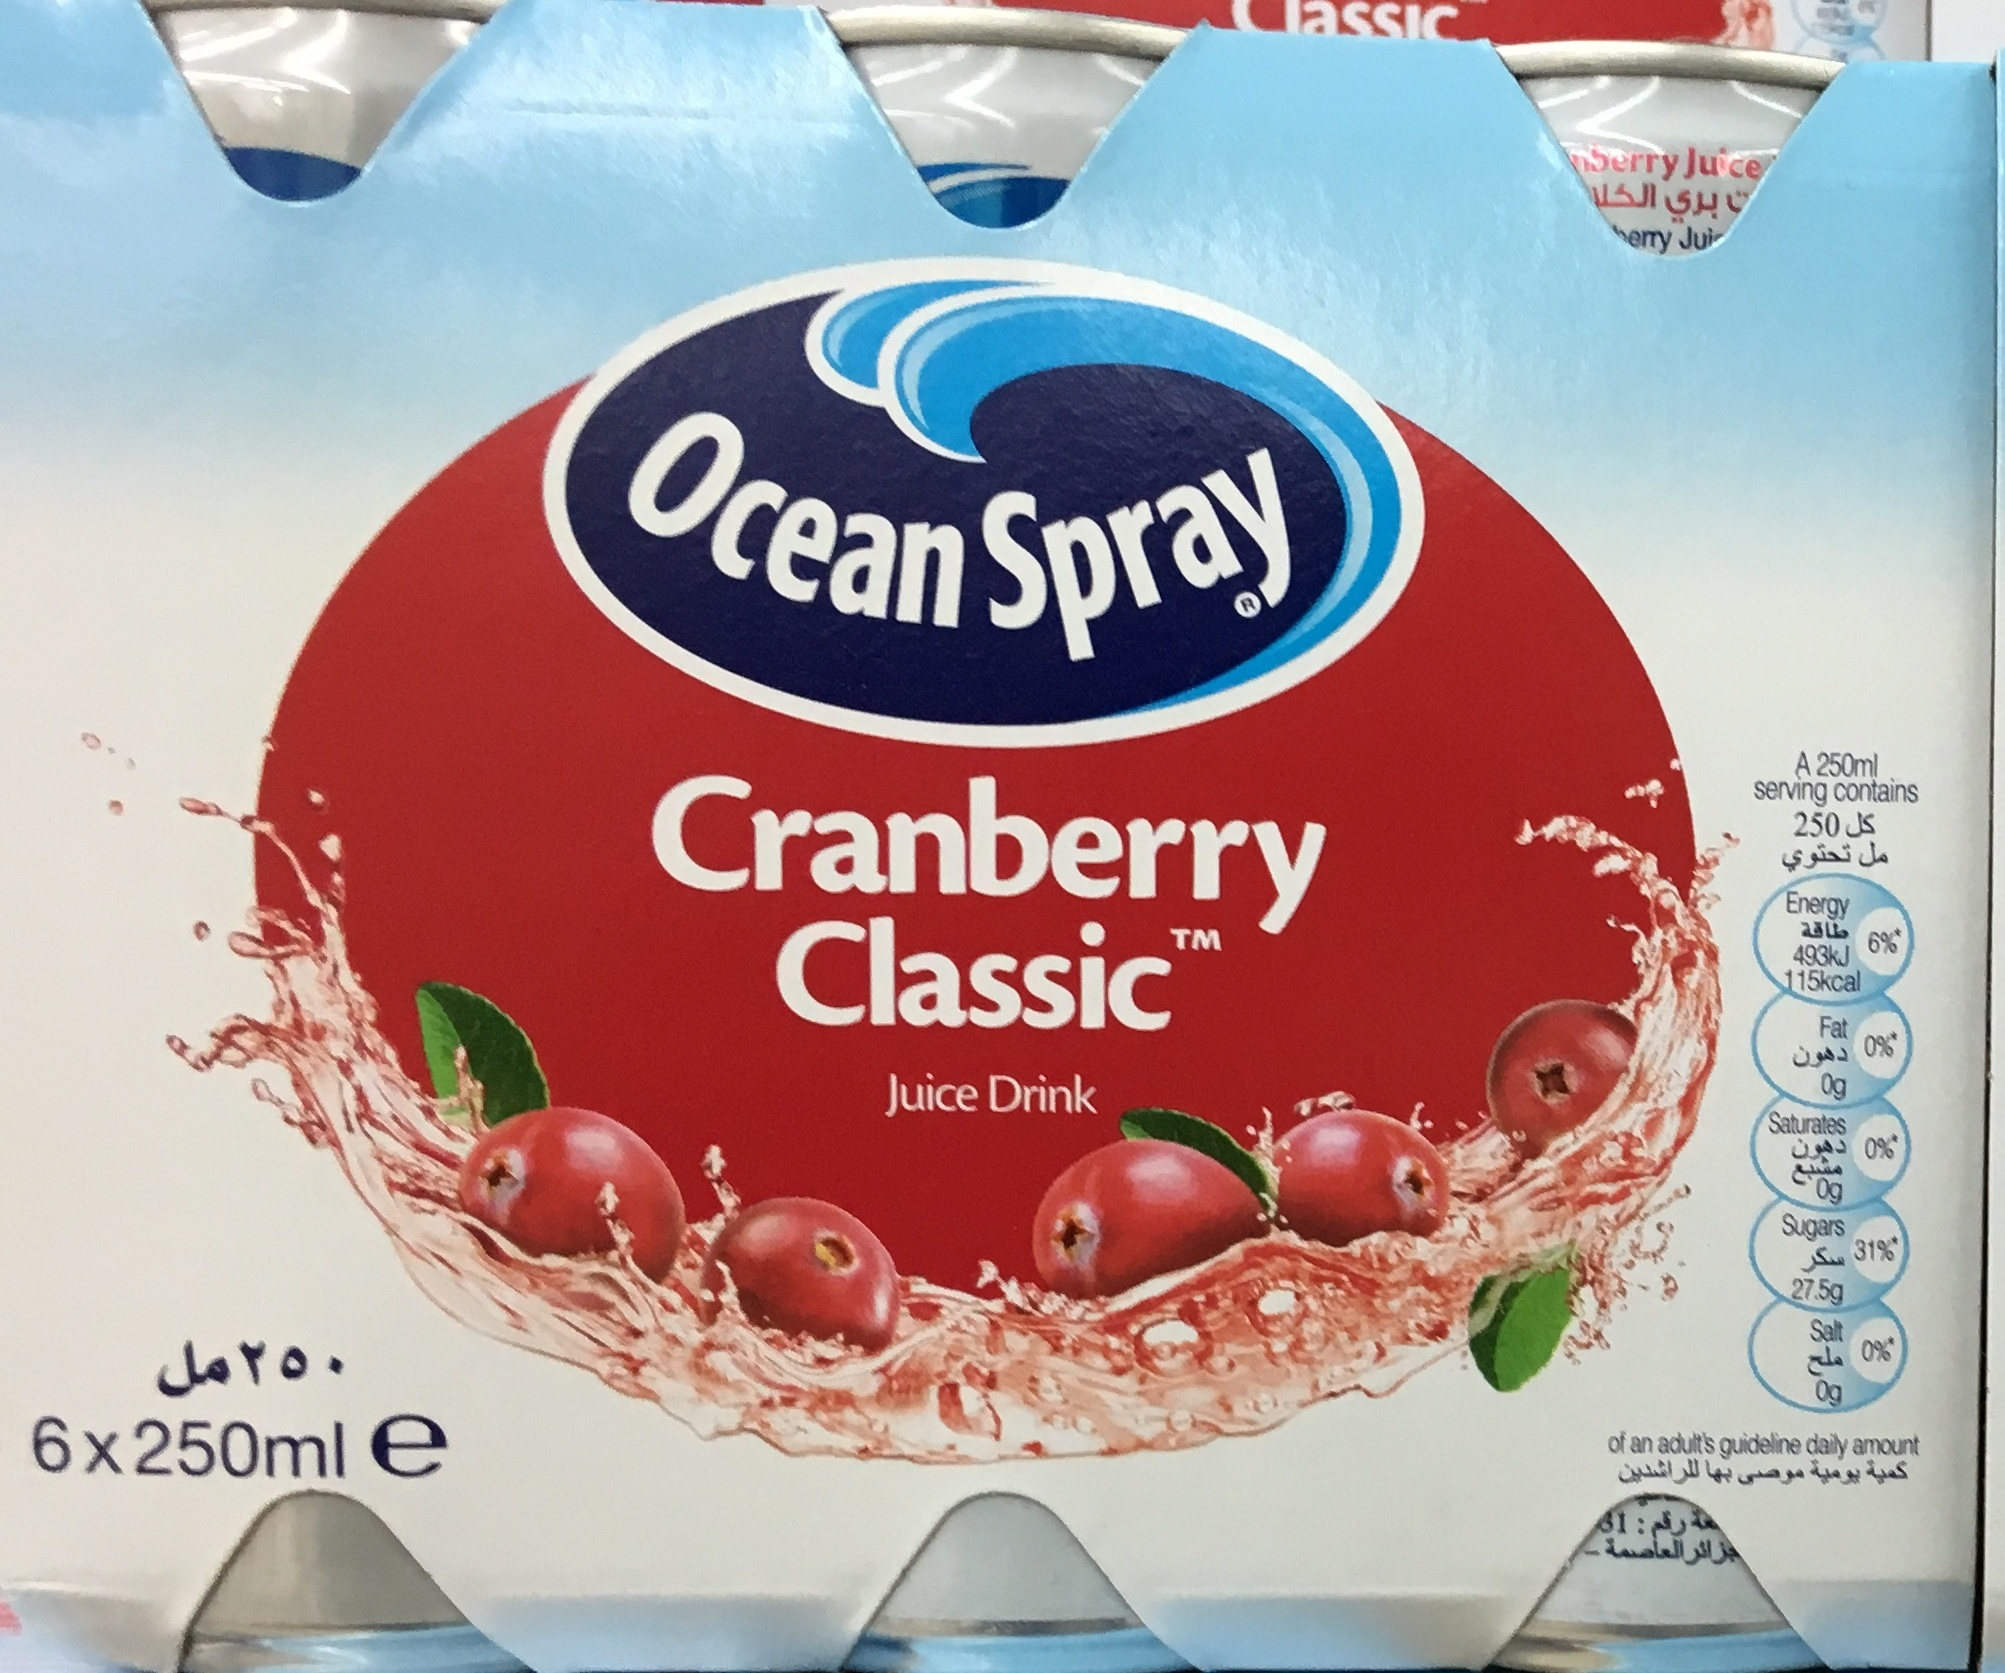 Cranberry Classic Juice Drink - Product - fr